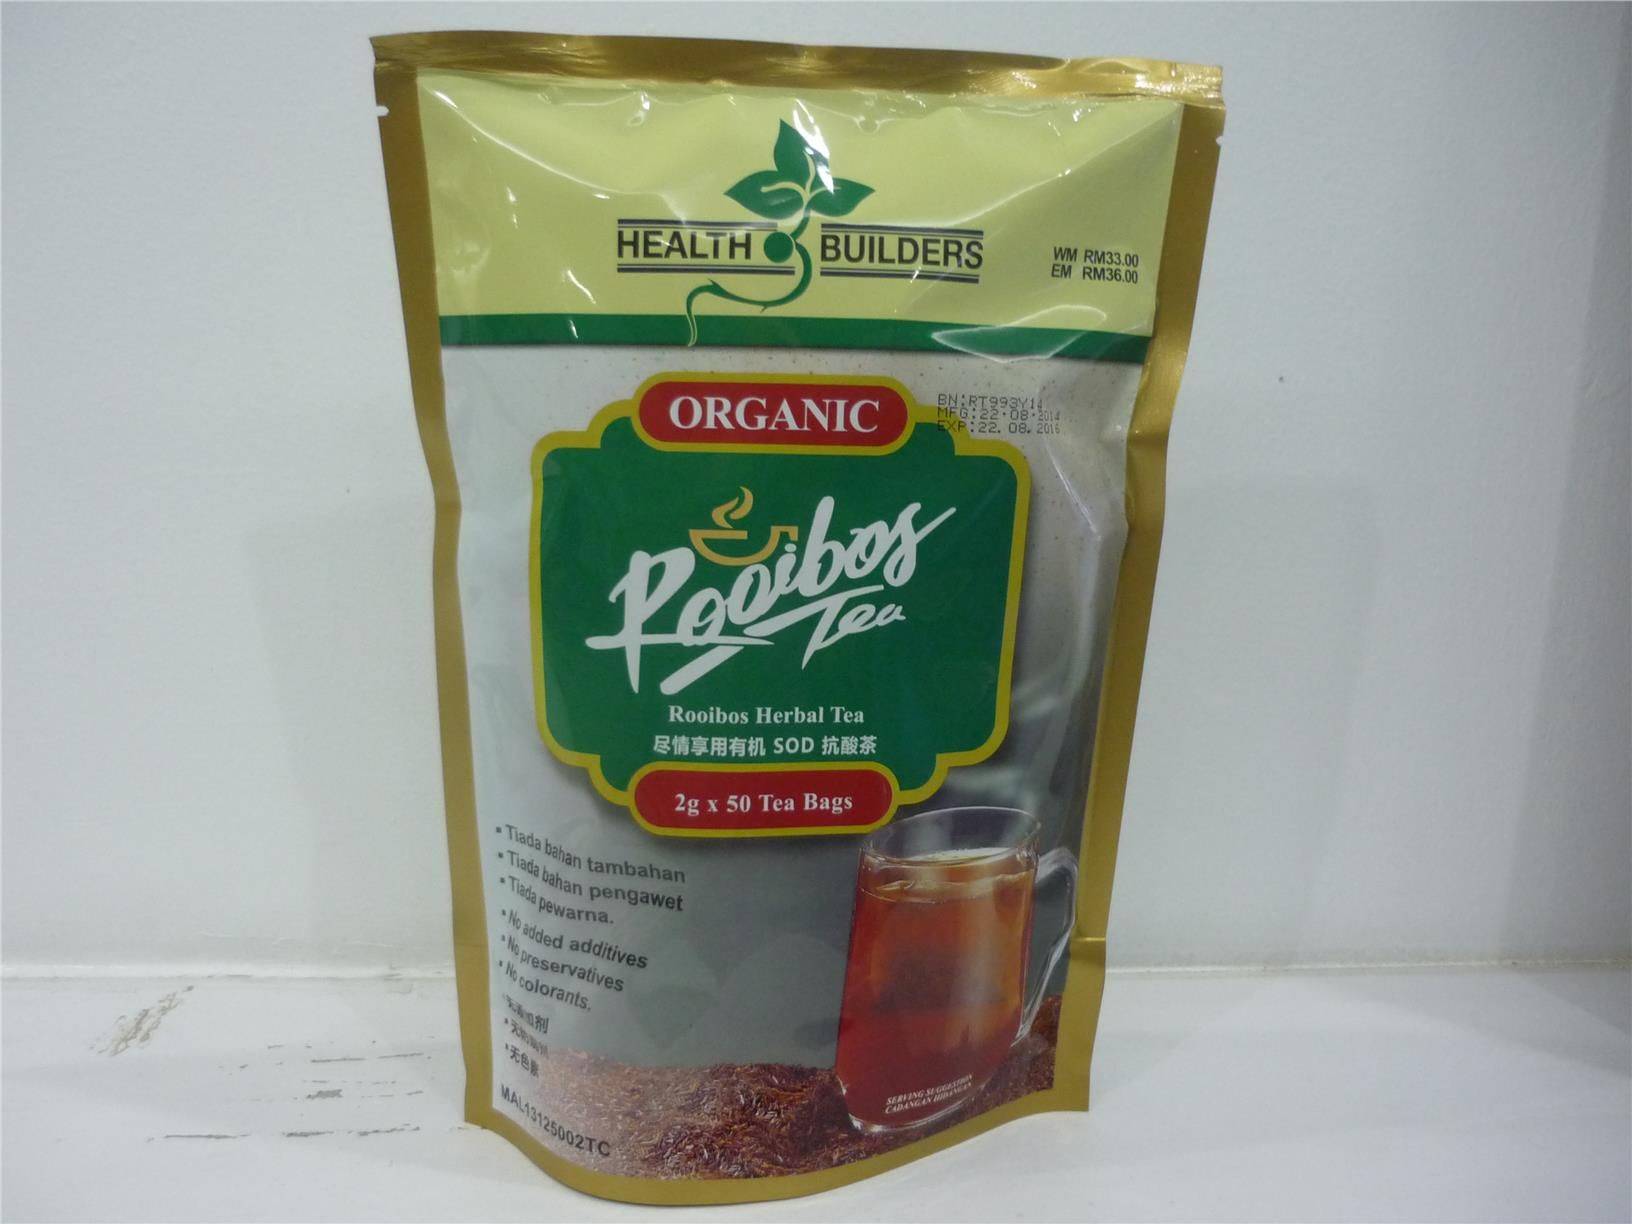 Health Builders Organic Rooibos Tea (1 pack)